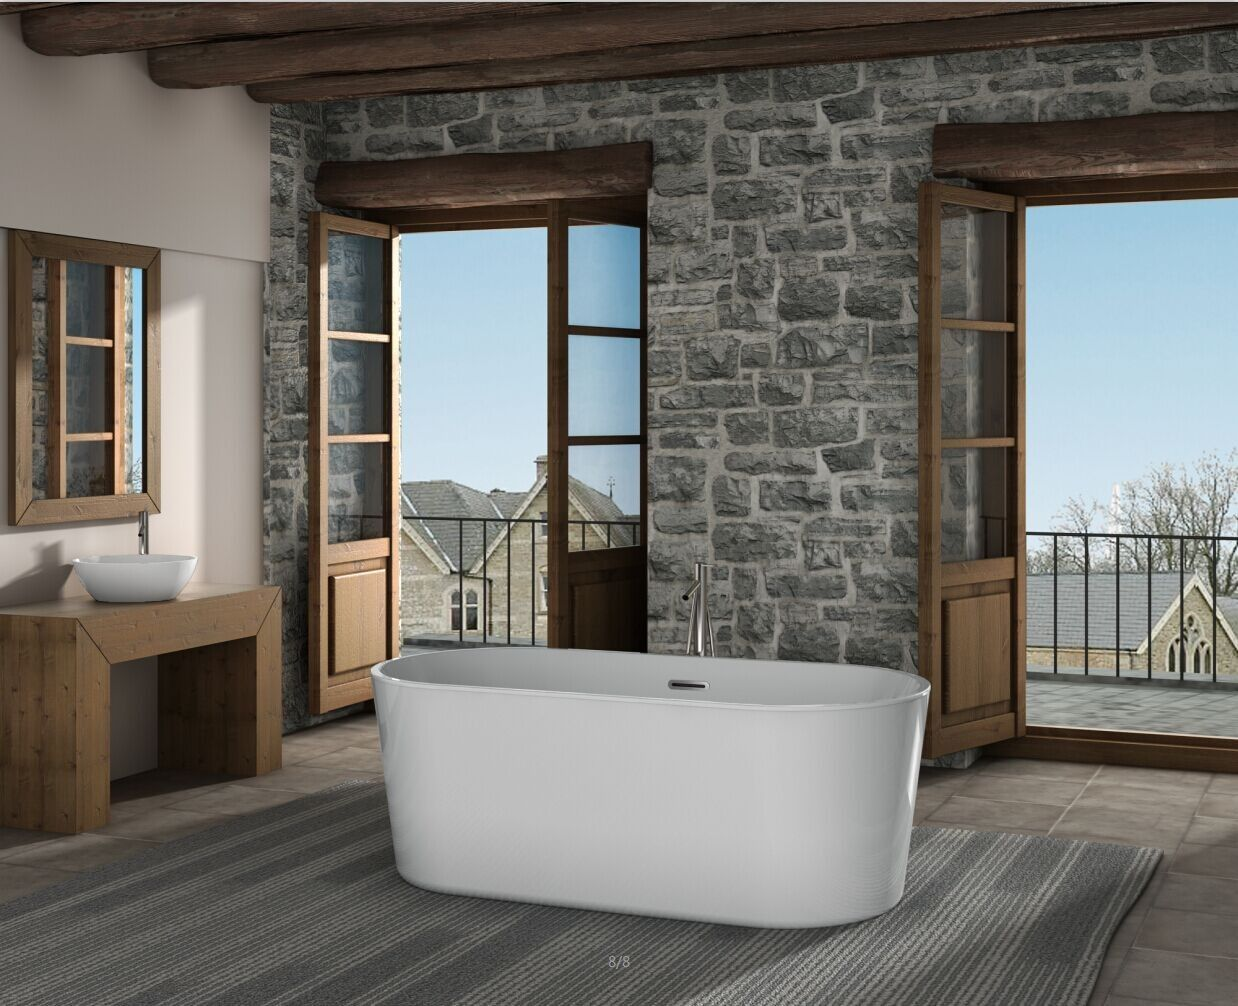 Best selections of Bathroom Toilets & and Toilet Suites in